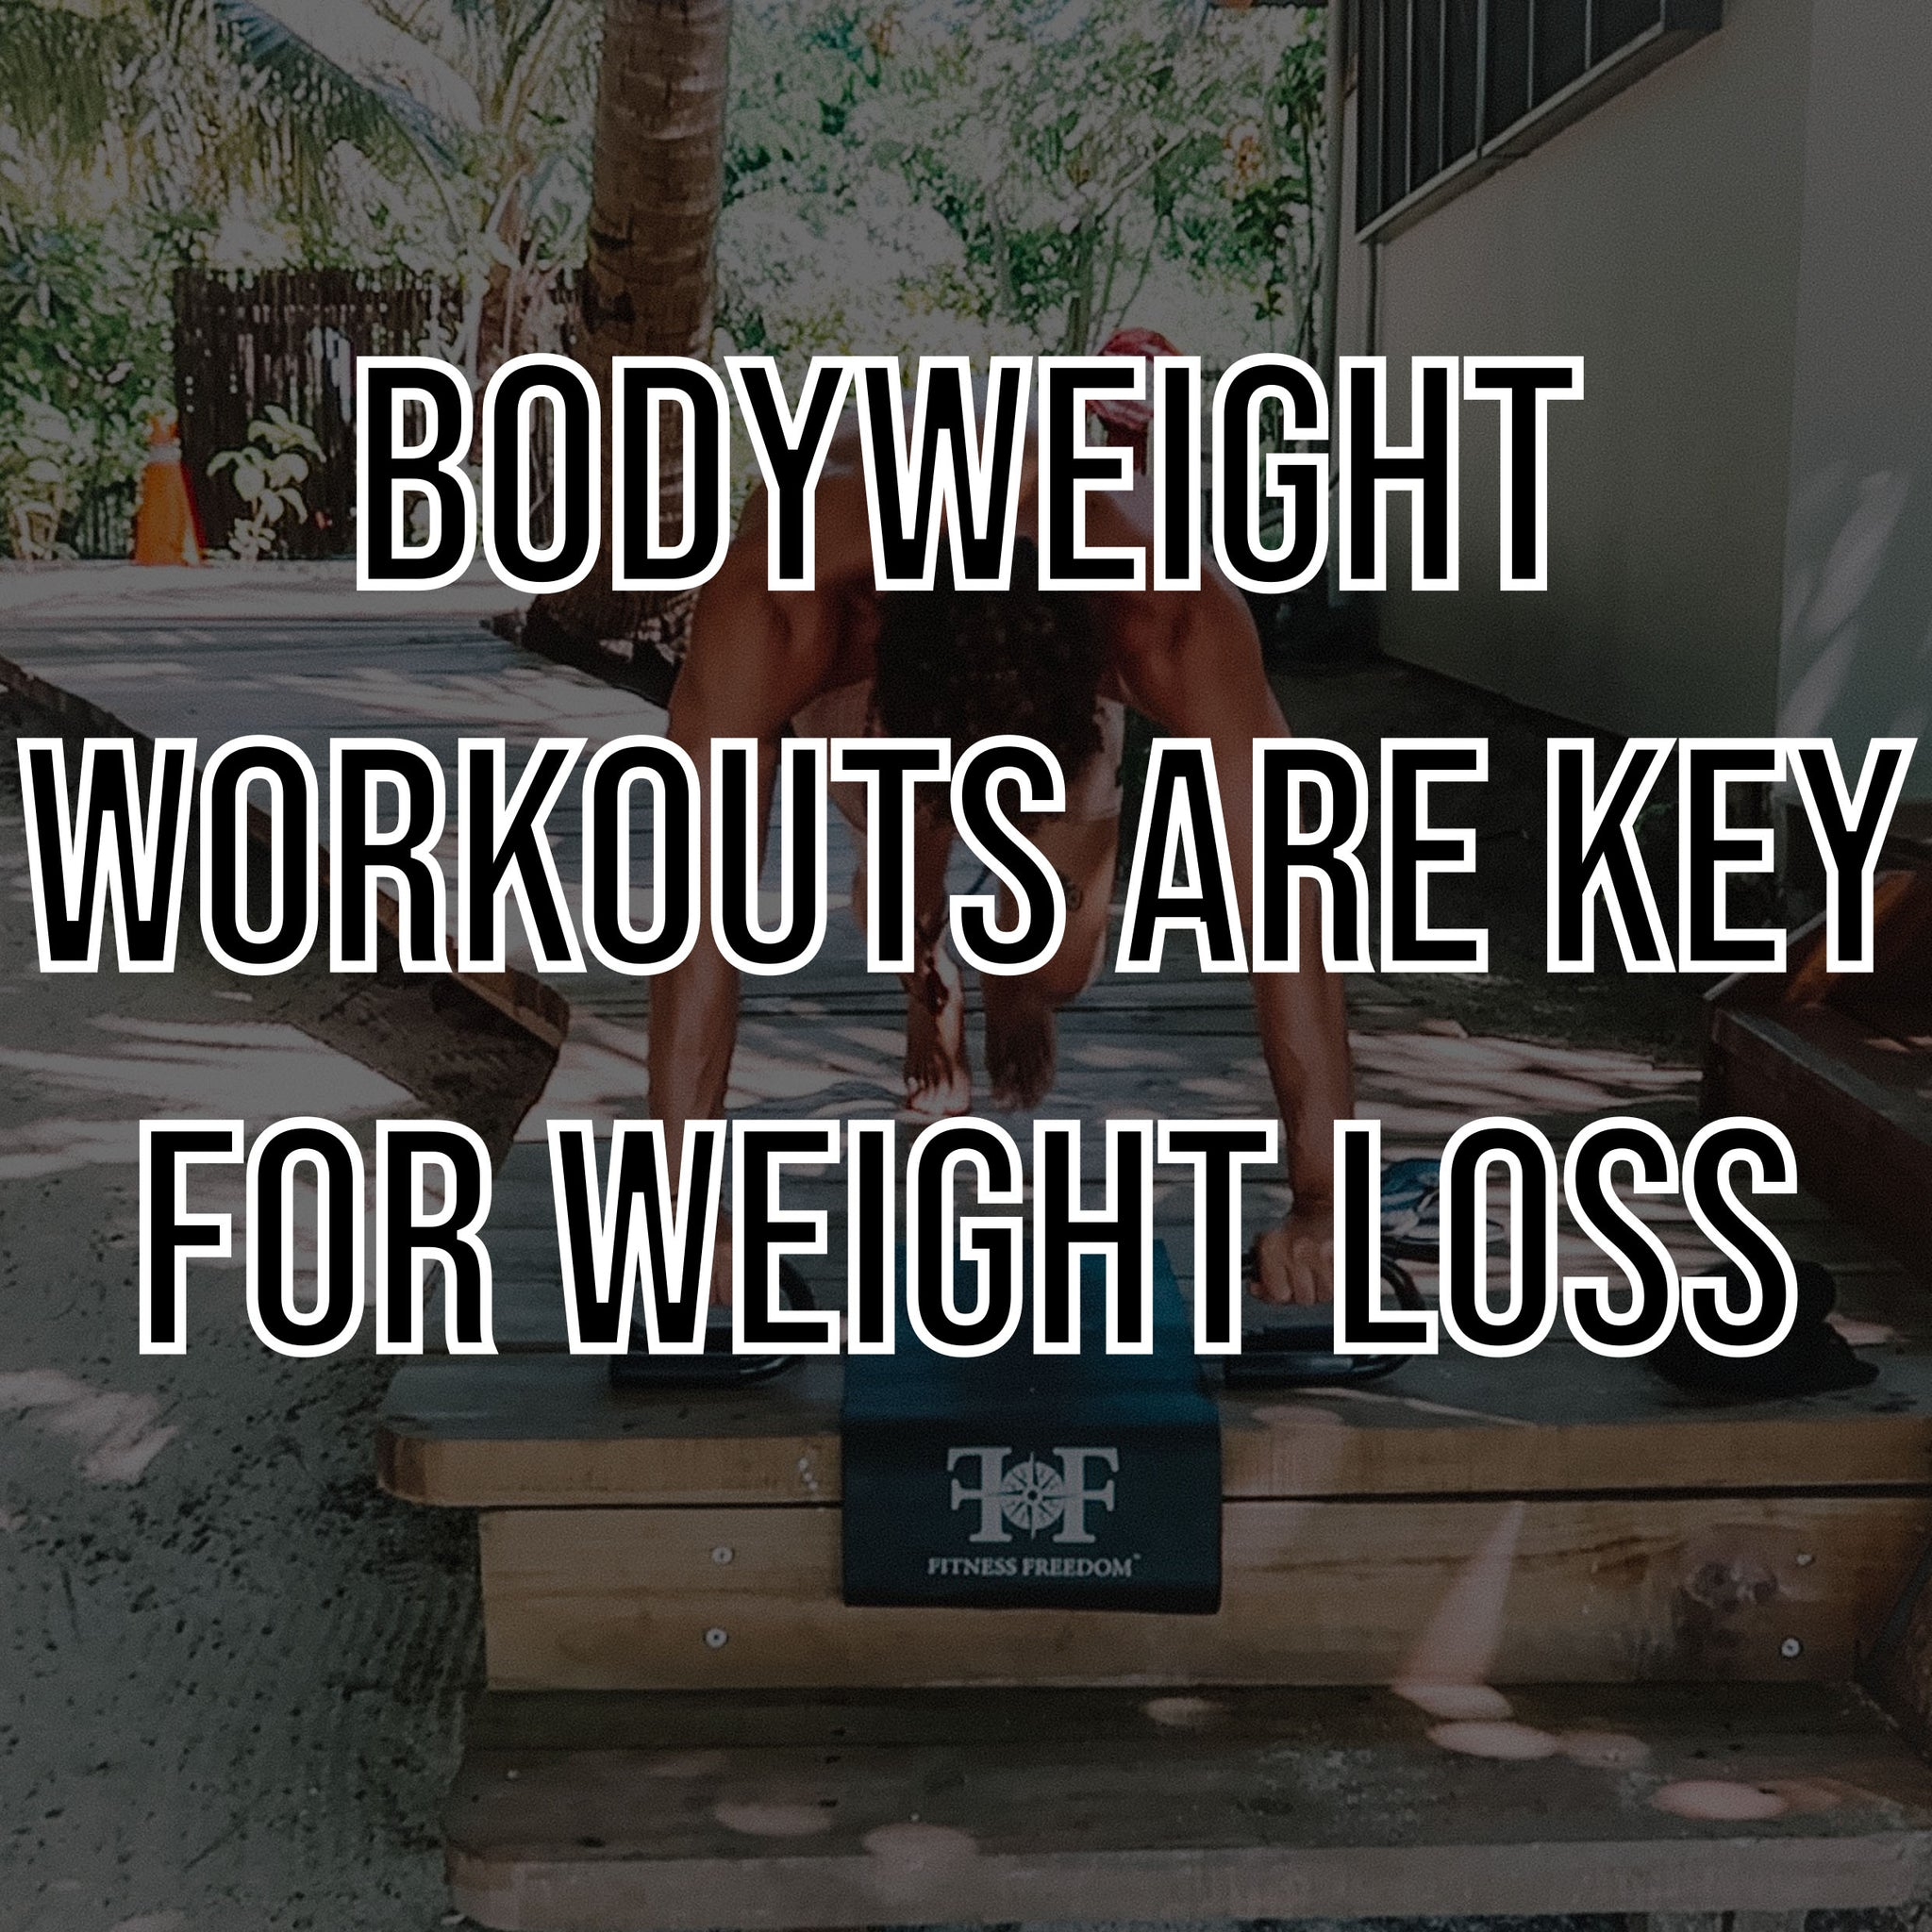 Weights Are Great, But Bodyweight Exercises Are Key For Weight Loss - Expert Advise